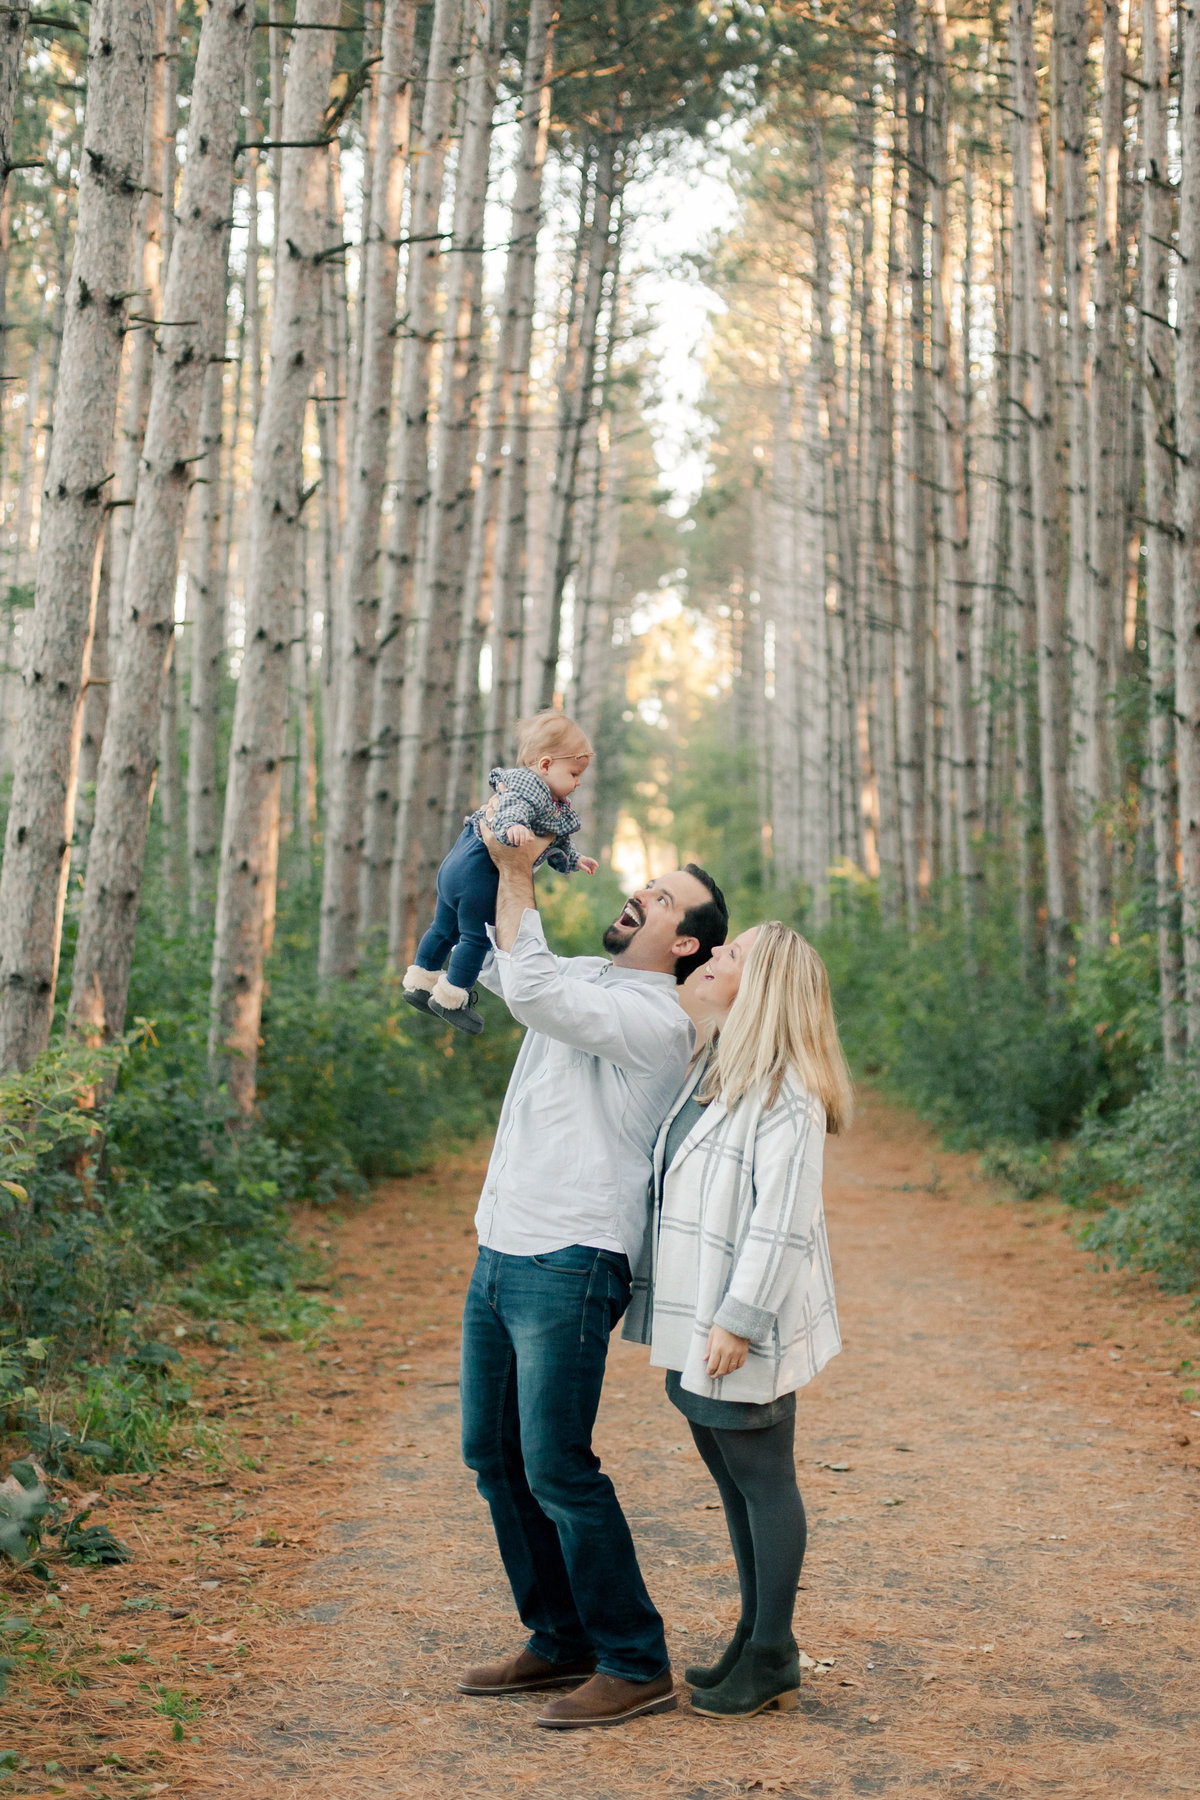 parents of 6 month old baby girl play in the pine forest of twin cities minnesota